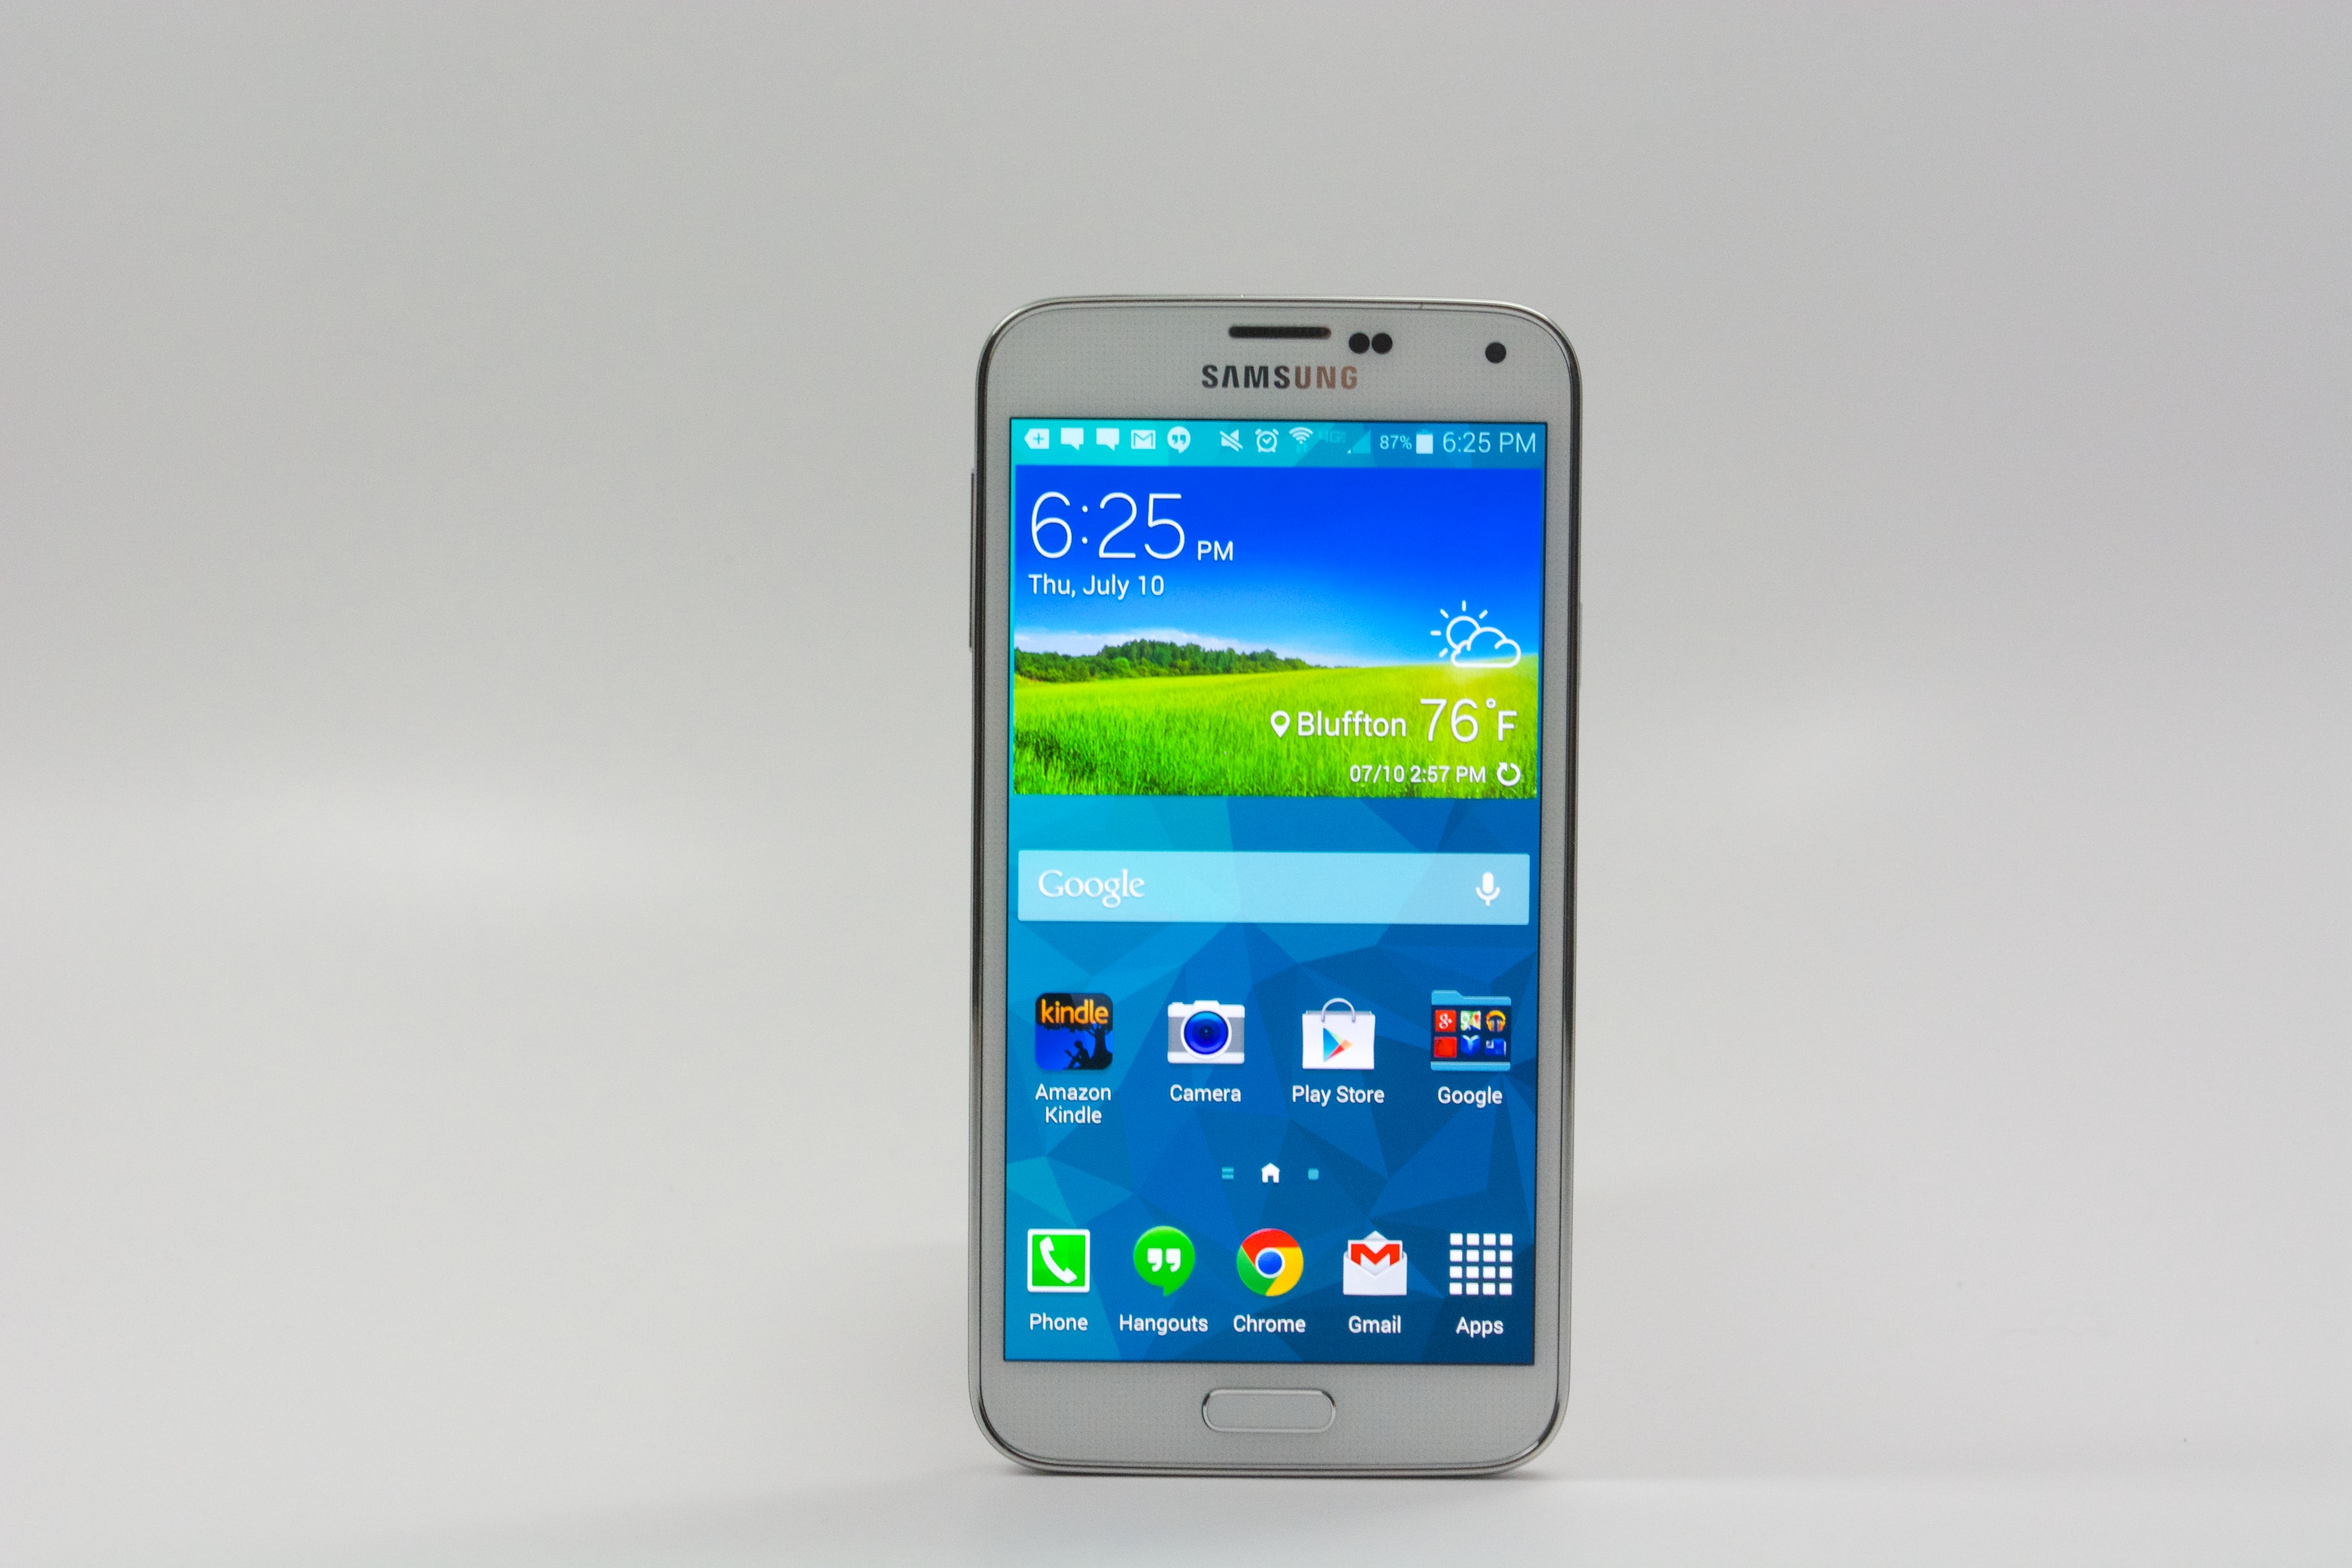 How to delete email from samsung galaxy s5